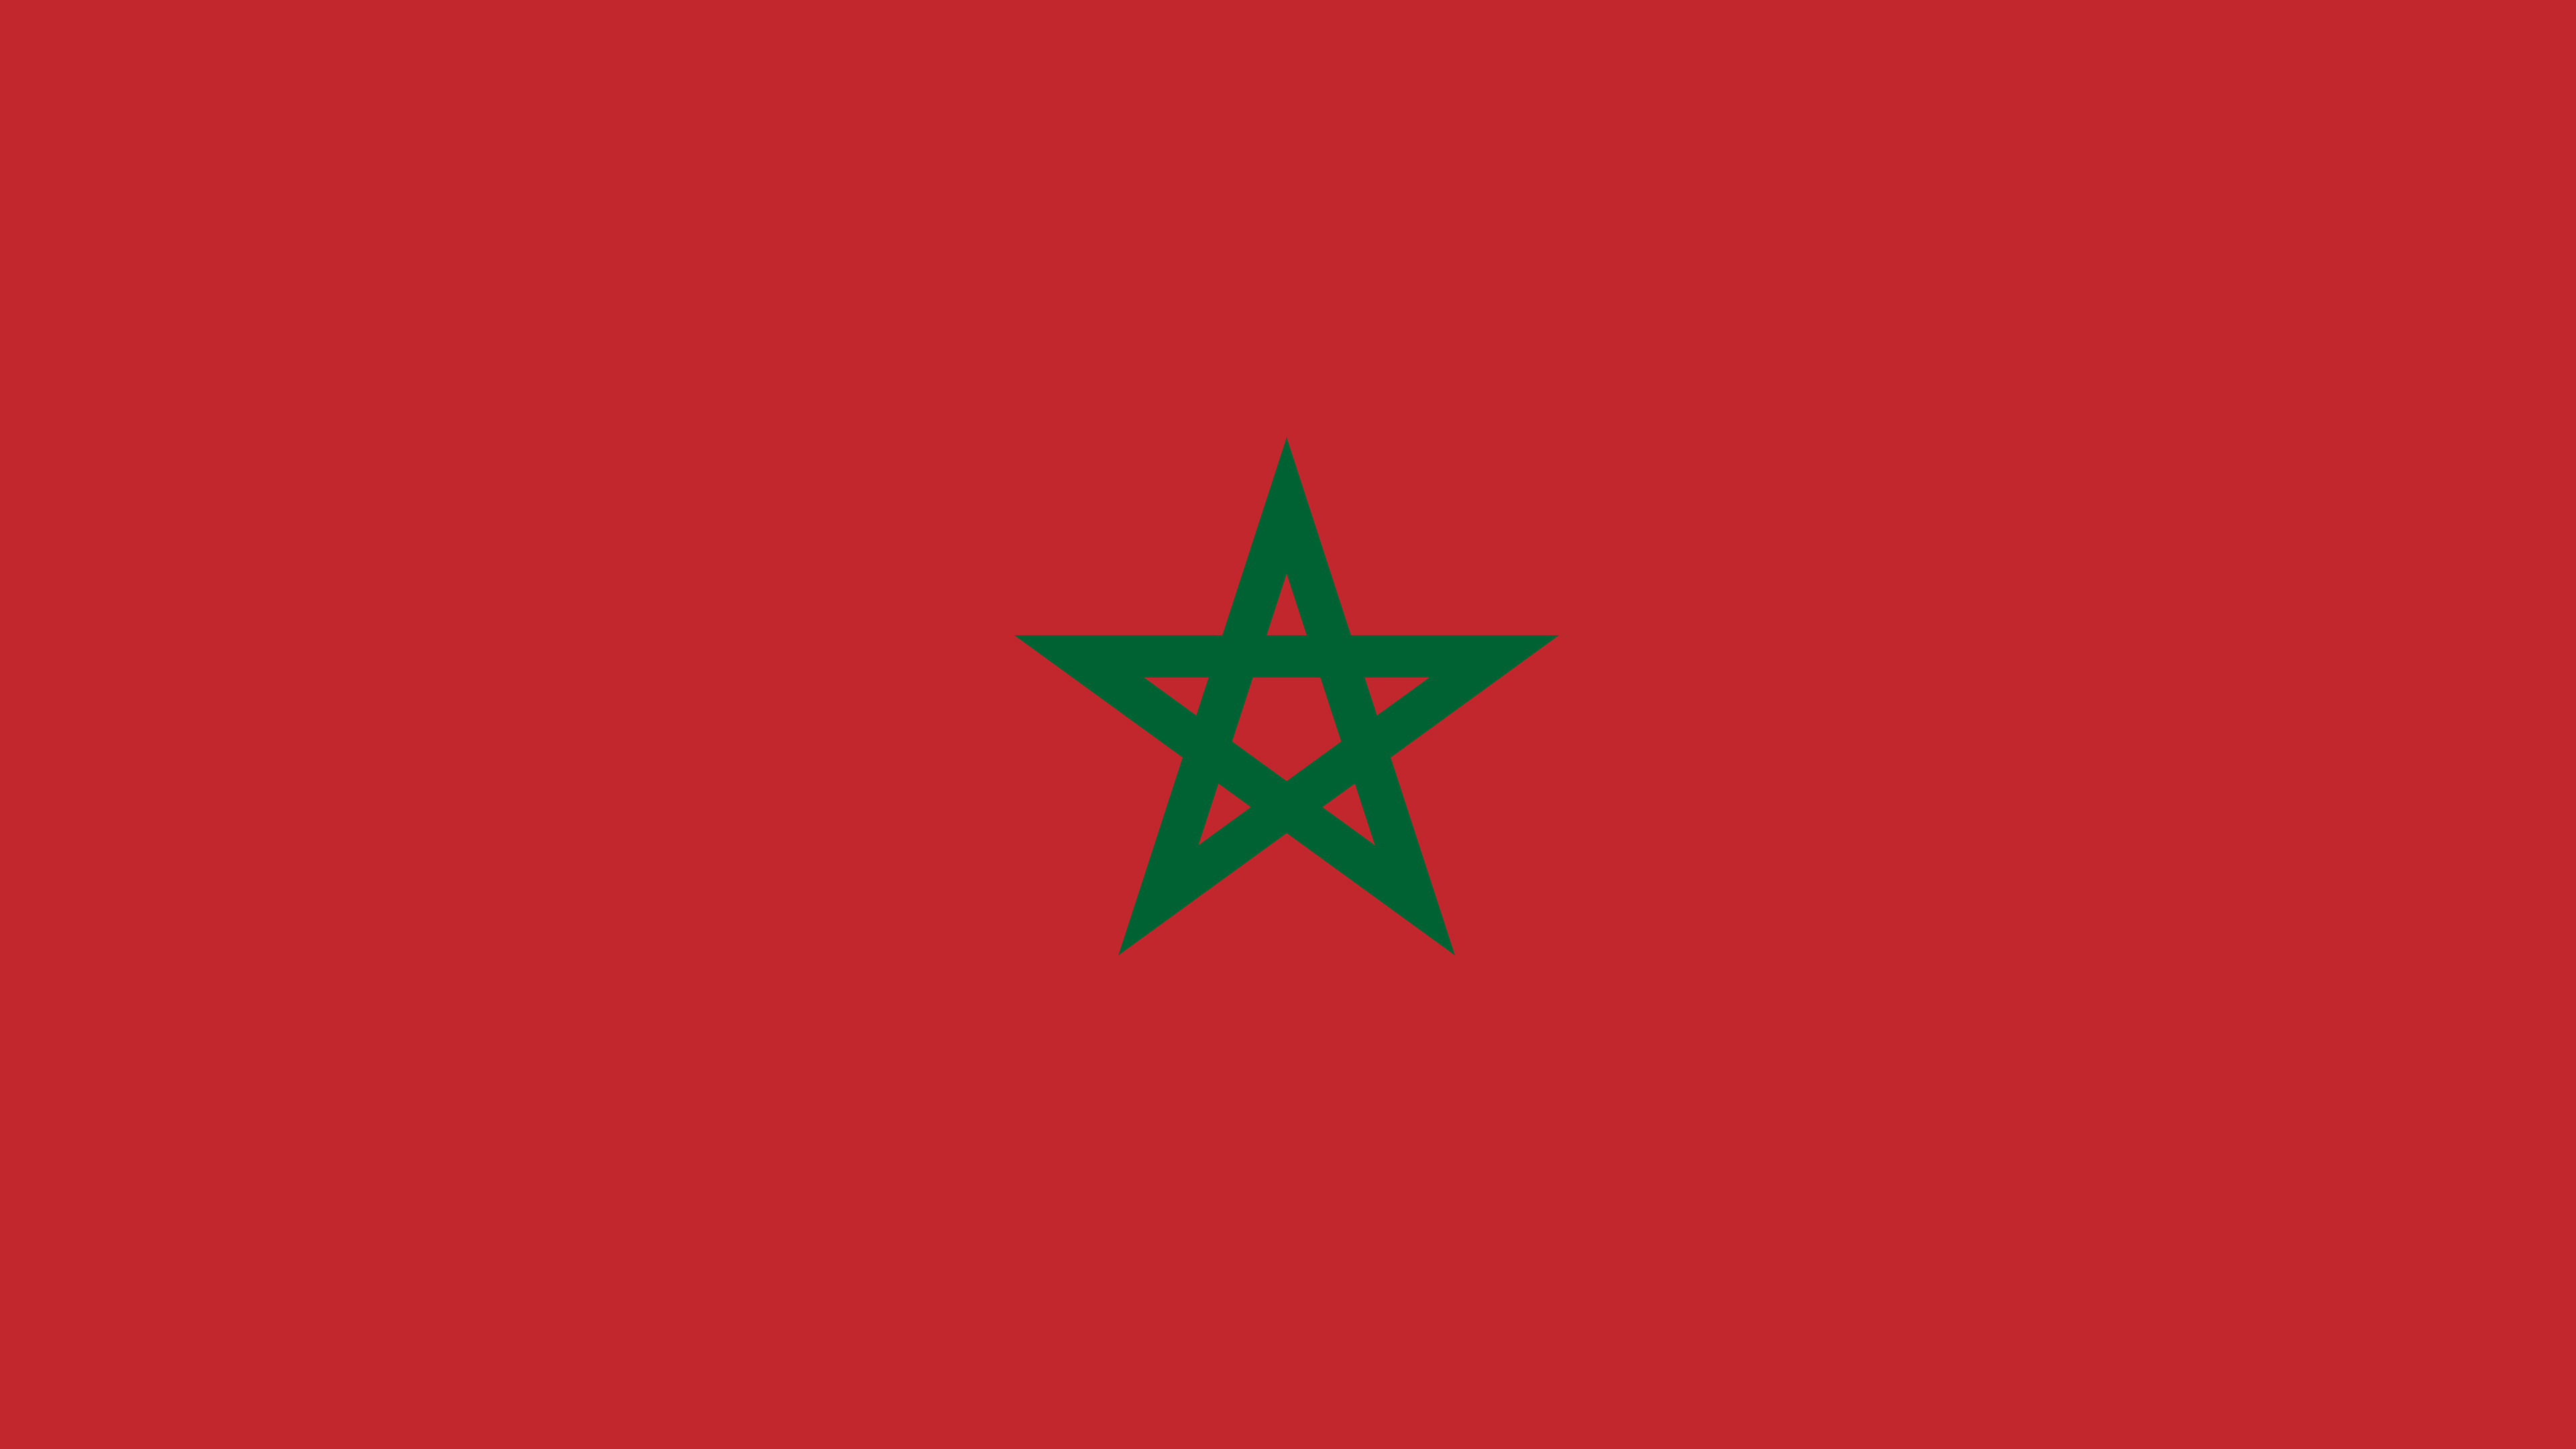 morocco flag uhd 4k wallpaper